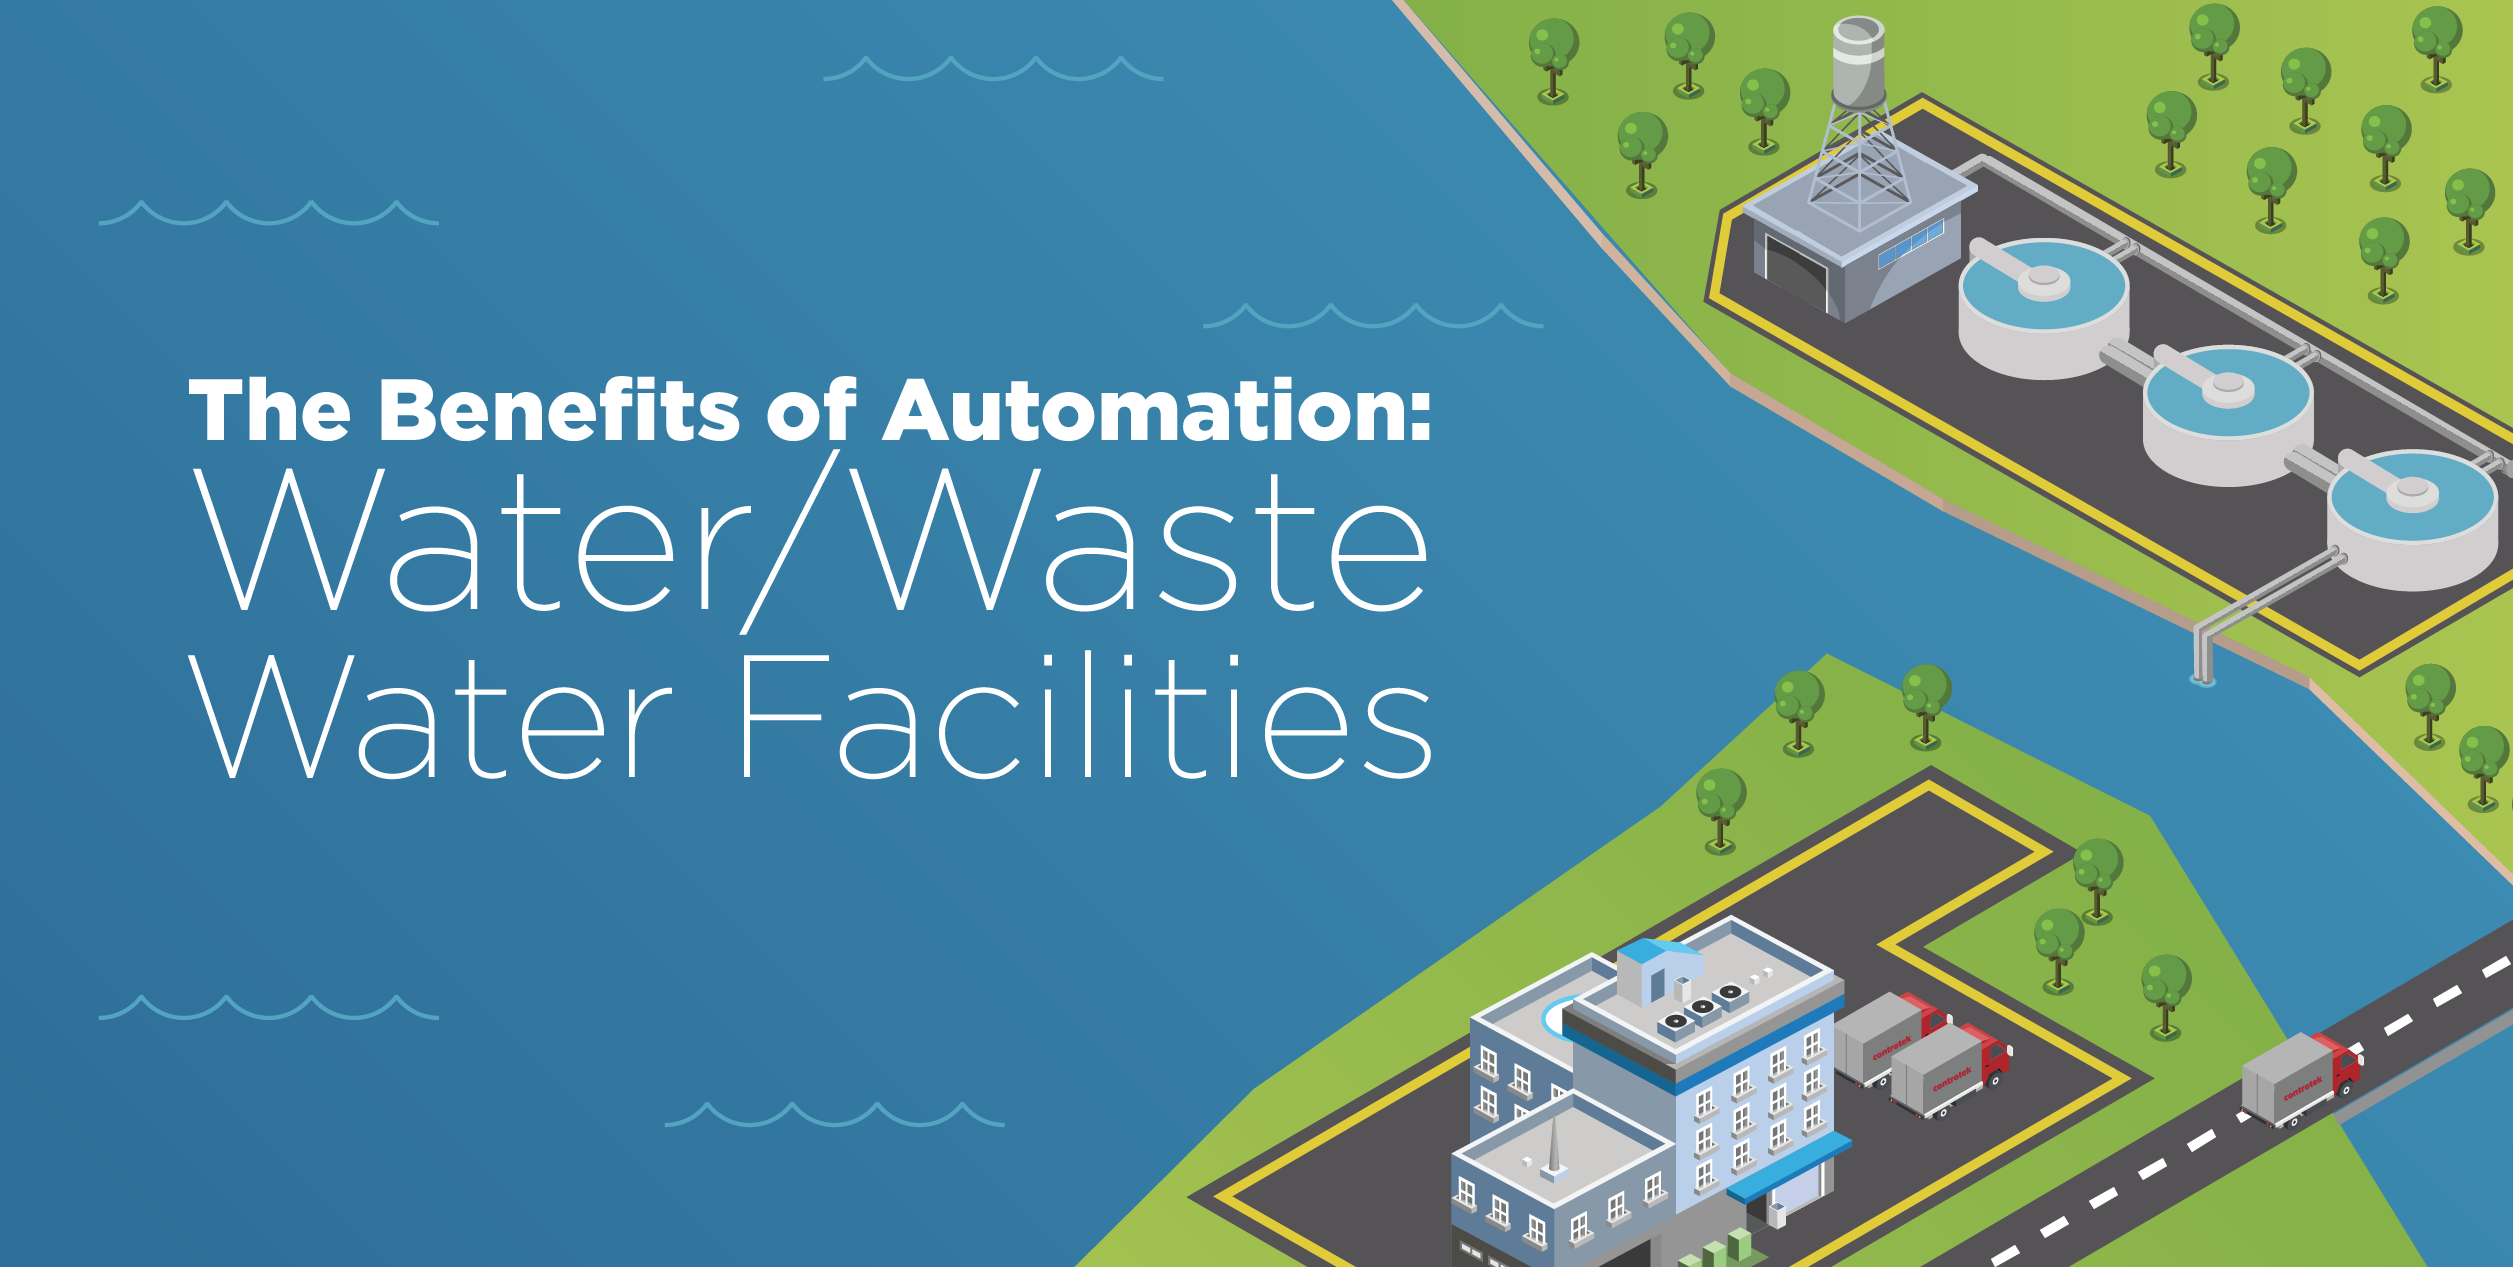 Benefits of an Automated Water/Waste Water Facility